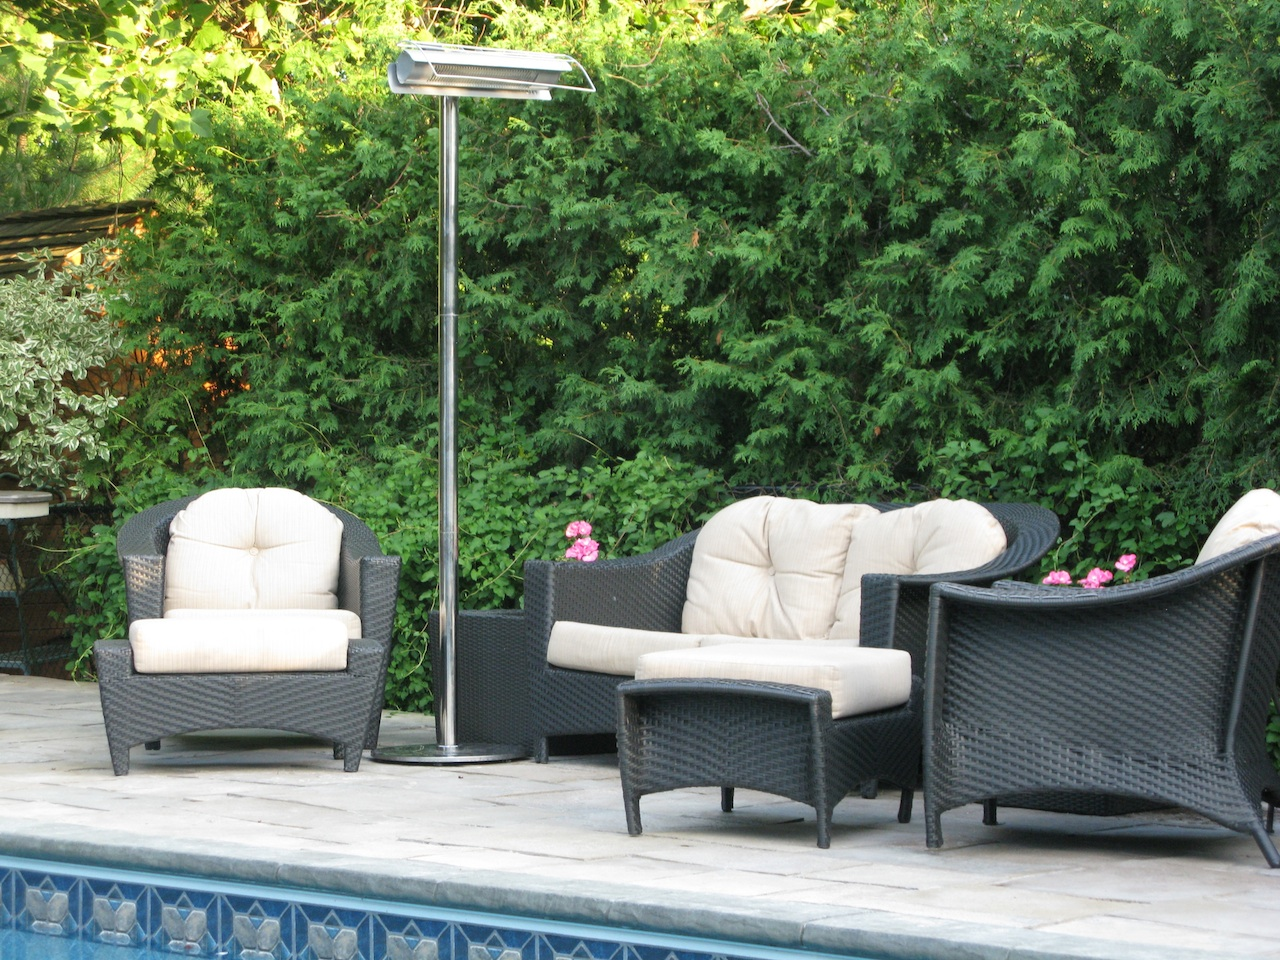 Radiant Heating Outdoor Patio Images